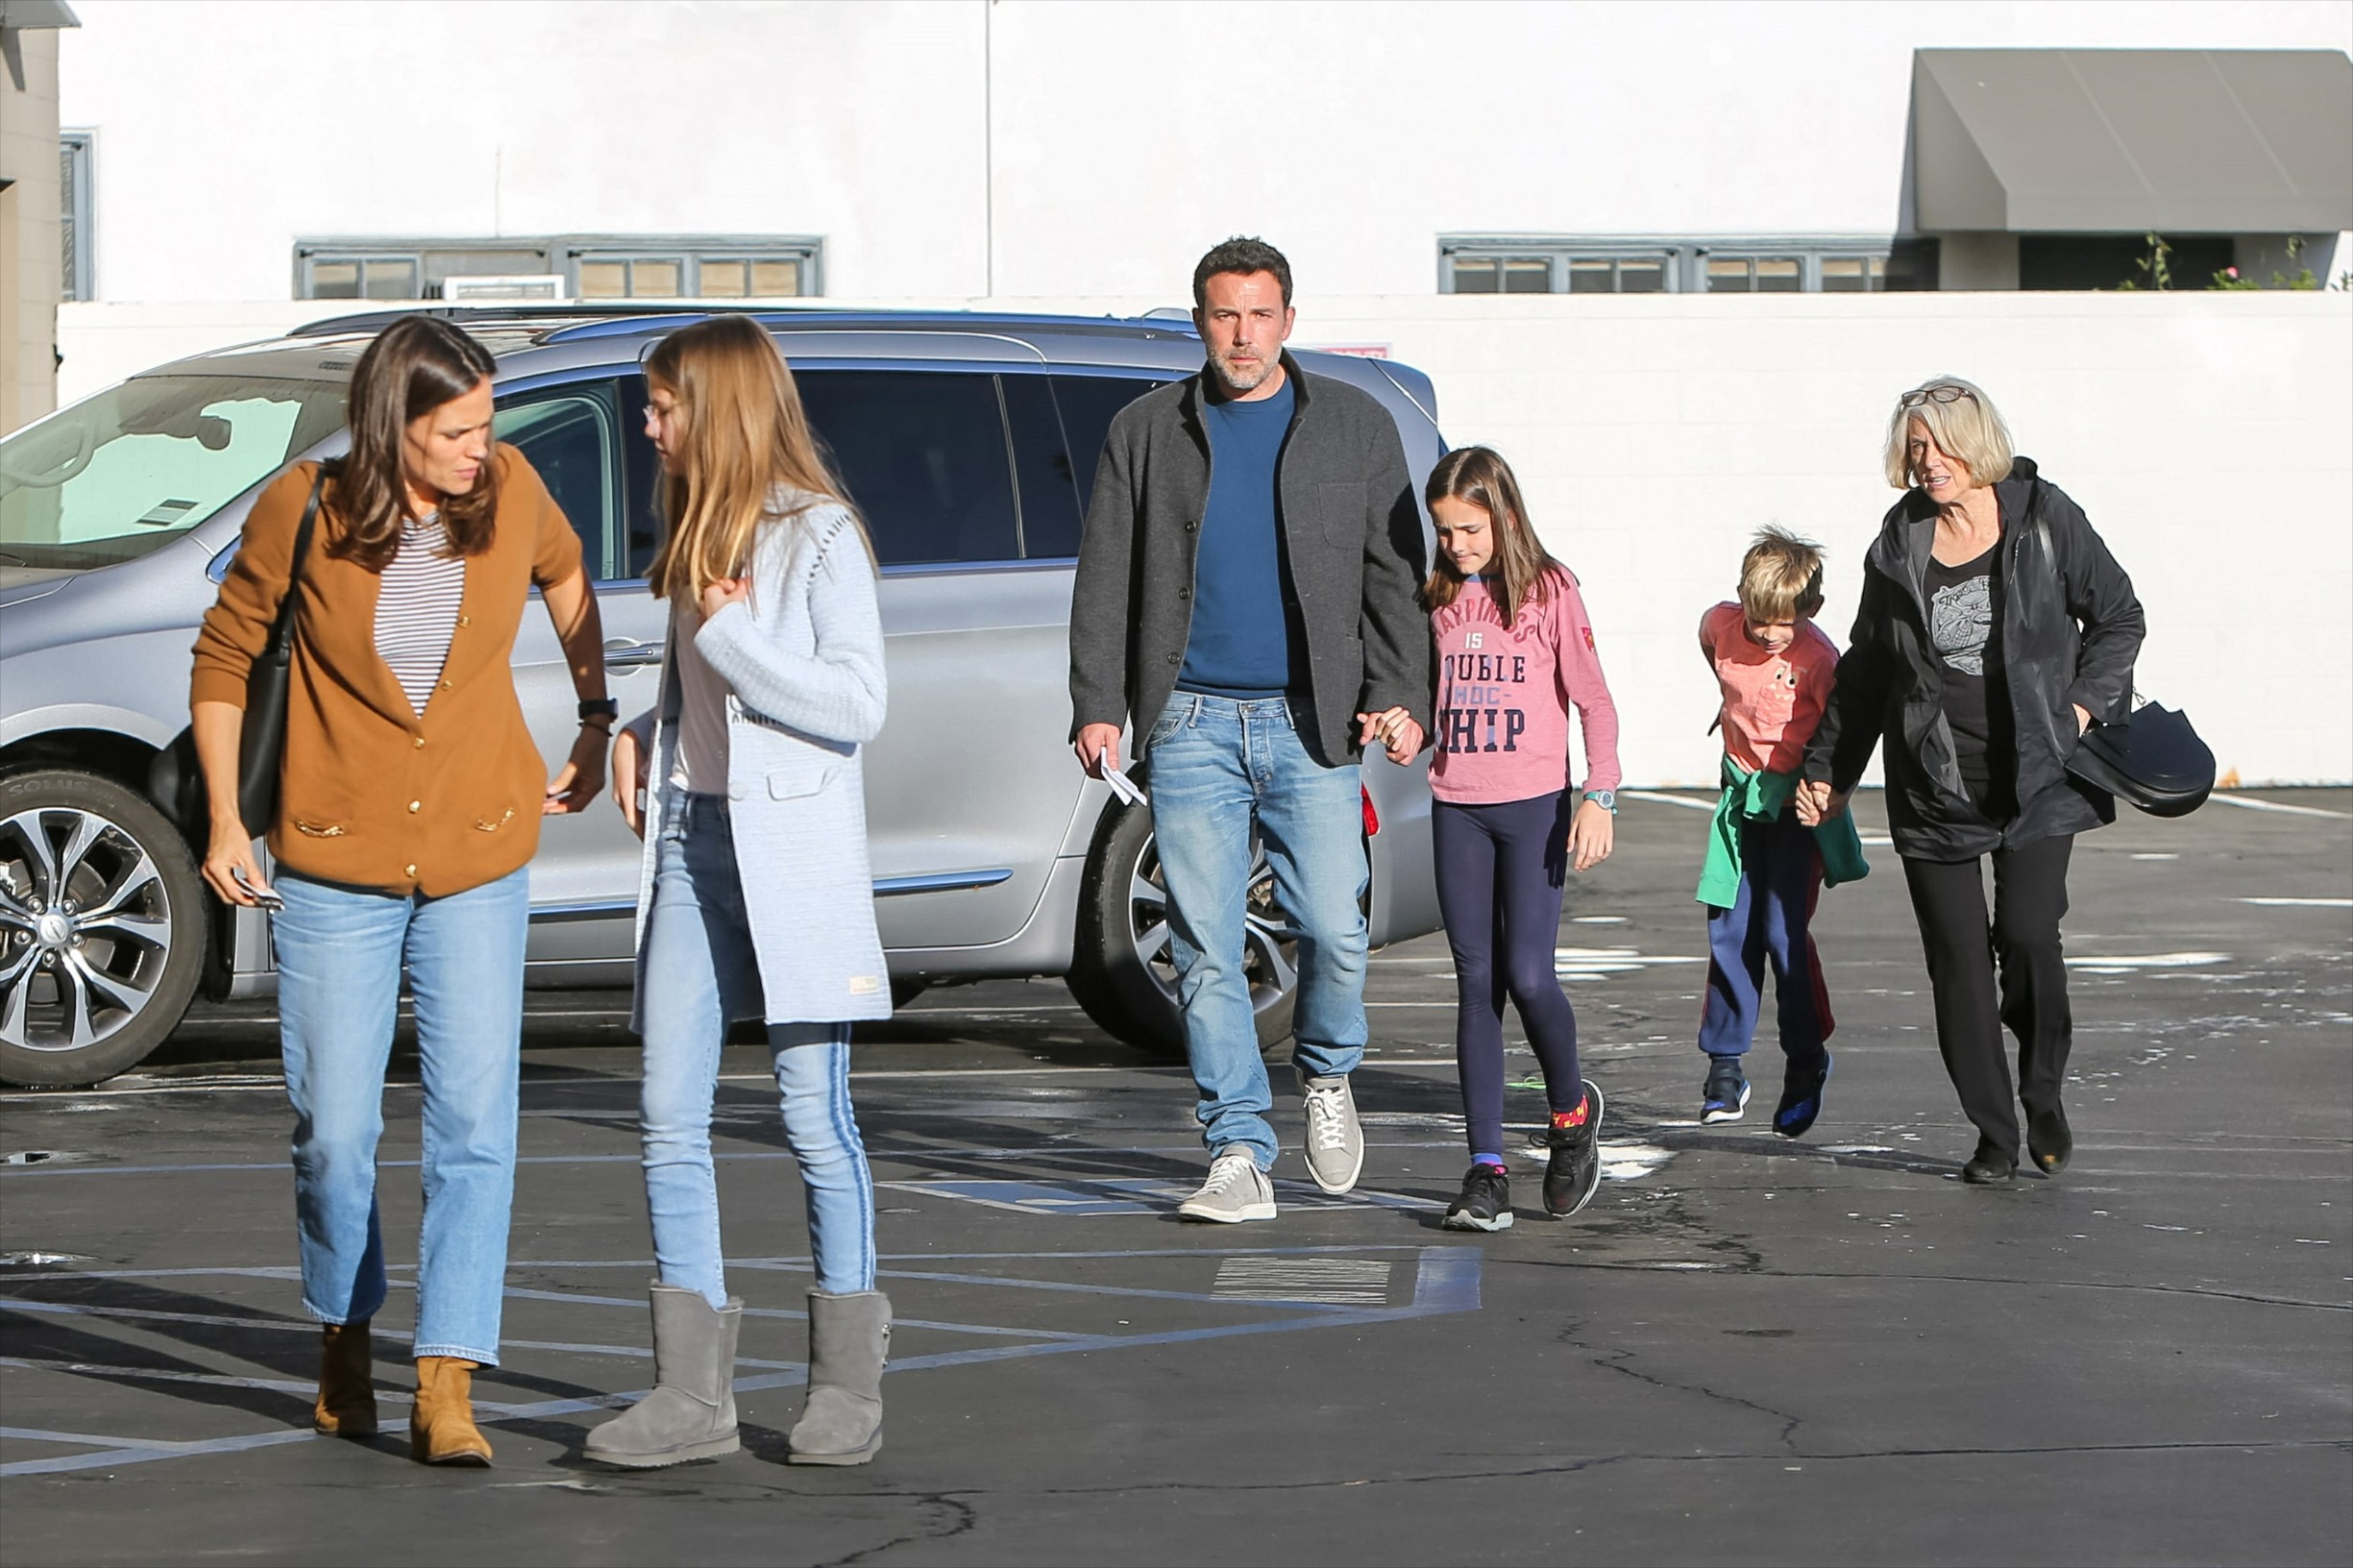 -Los Angeles, CA - 20191127 - Jennifer Garner and Ben Affleck are seen taking their kids to the movies.    -PICTURED: Jennifer Garner, Ben Affleck -, Image: 485252667, License: Rights-managed, Restrictions: , Model Release: no, Credit line: BauerGriffin / INSTAR Images / Profimedia